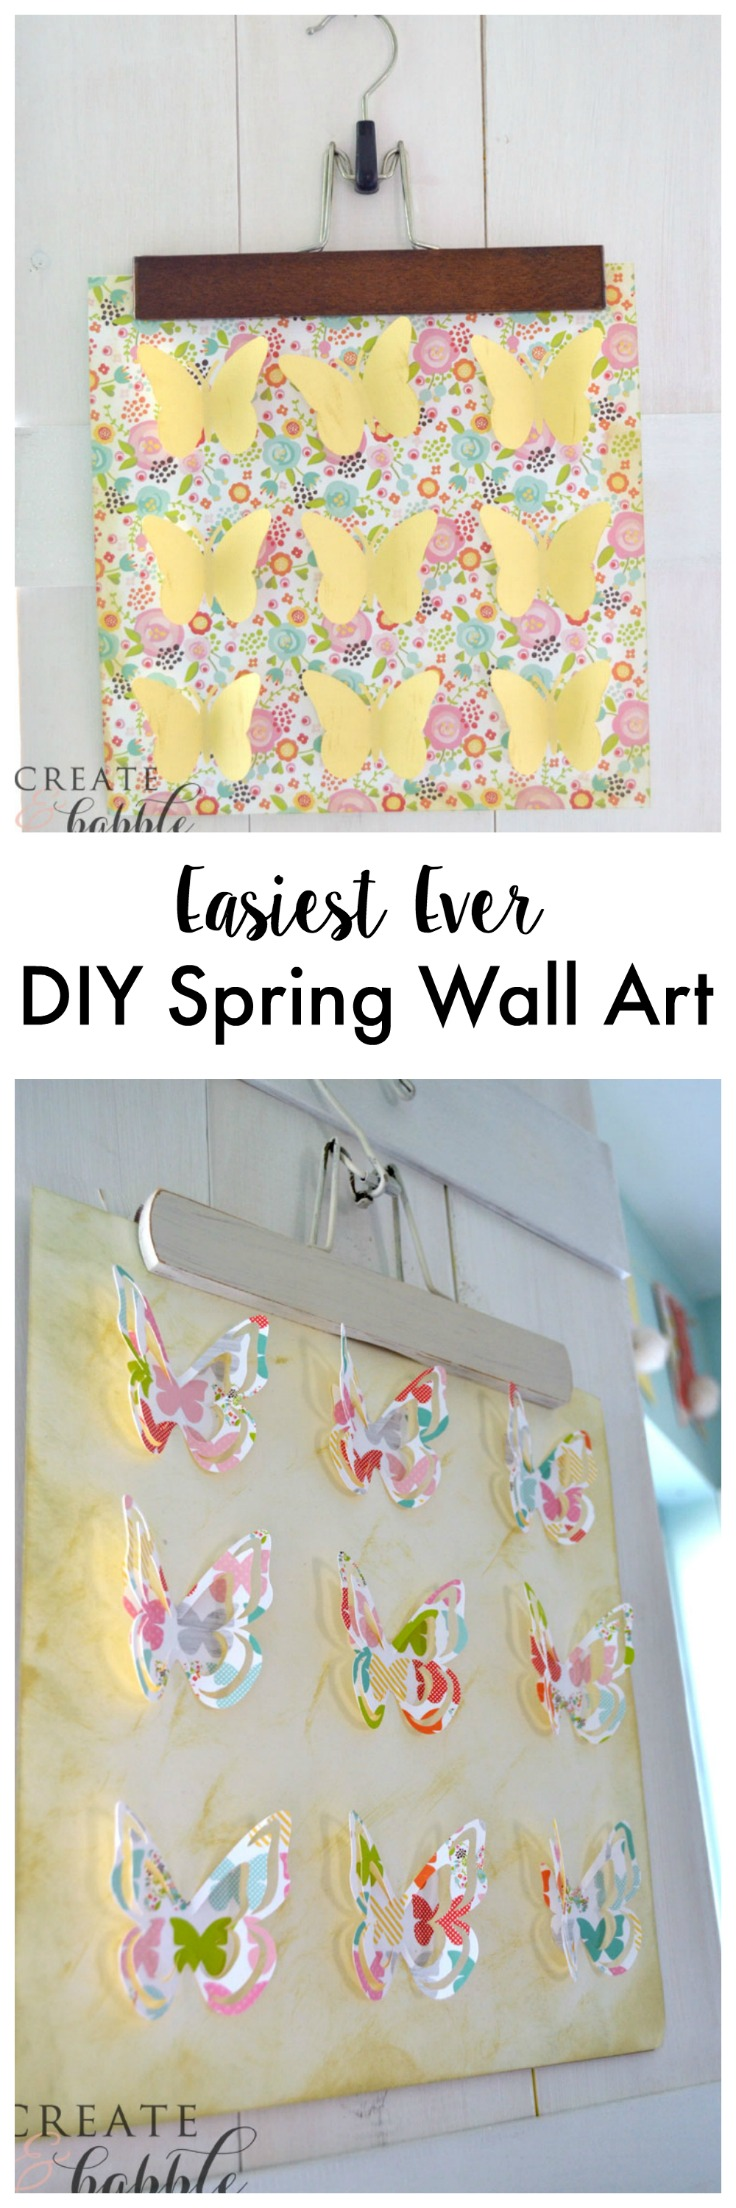 Easiest Ever Spring Wall Art made with card stock and wooden hangers